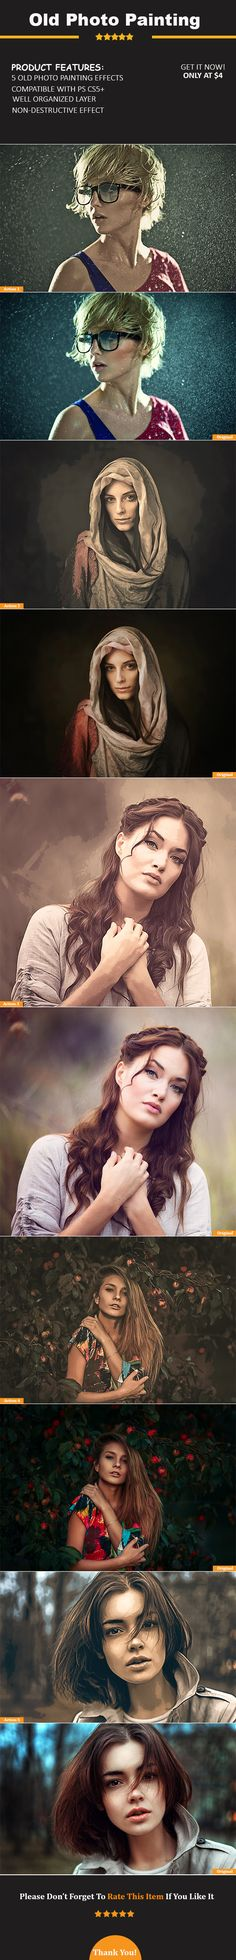 5 Old Photo Painting Photoshop Actions